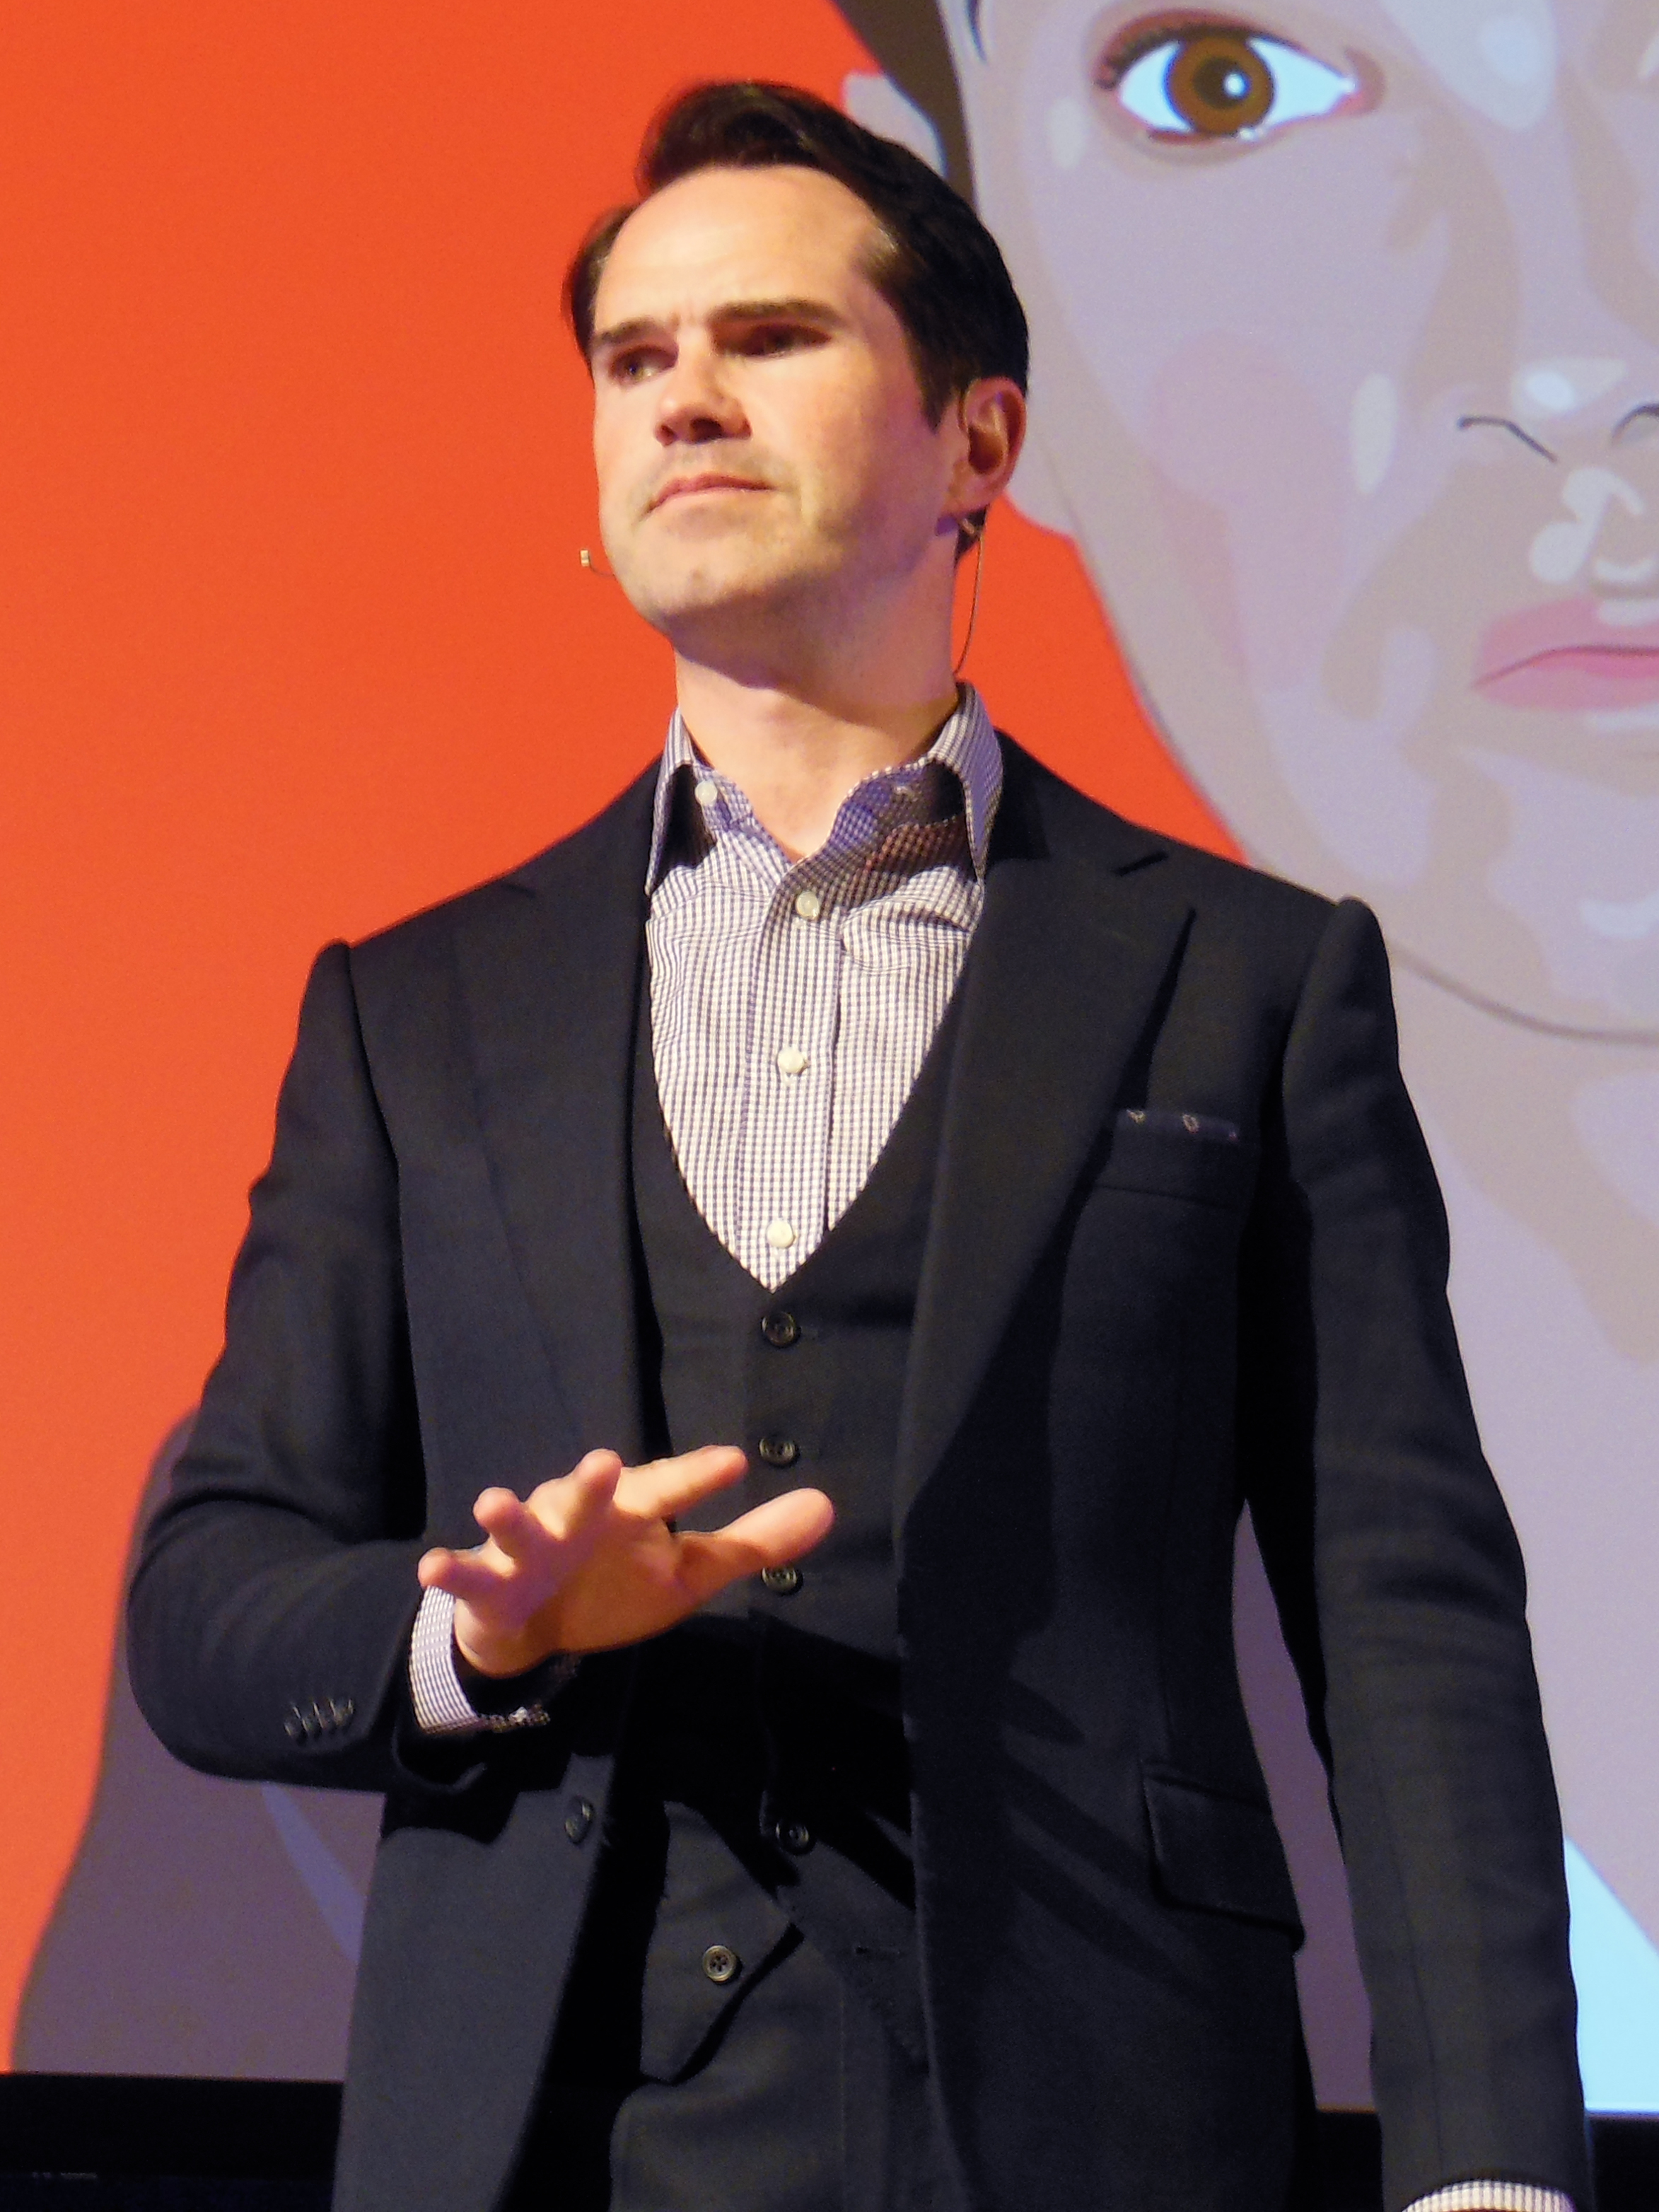 Jimmy Carr Simple English Wikipedia The Free Encyclopedia The couple were telling friends why they have so far not had children. jimmy carr simple english wikipedia